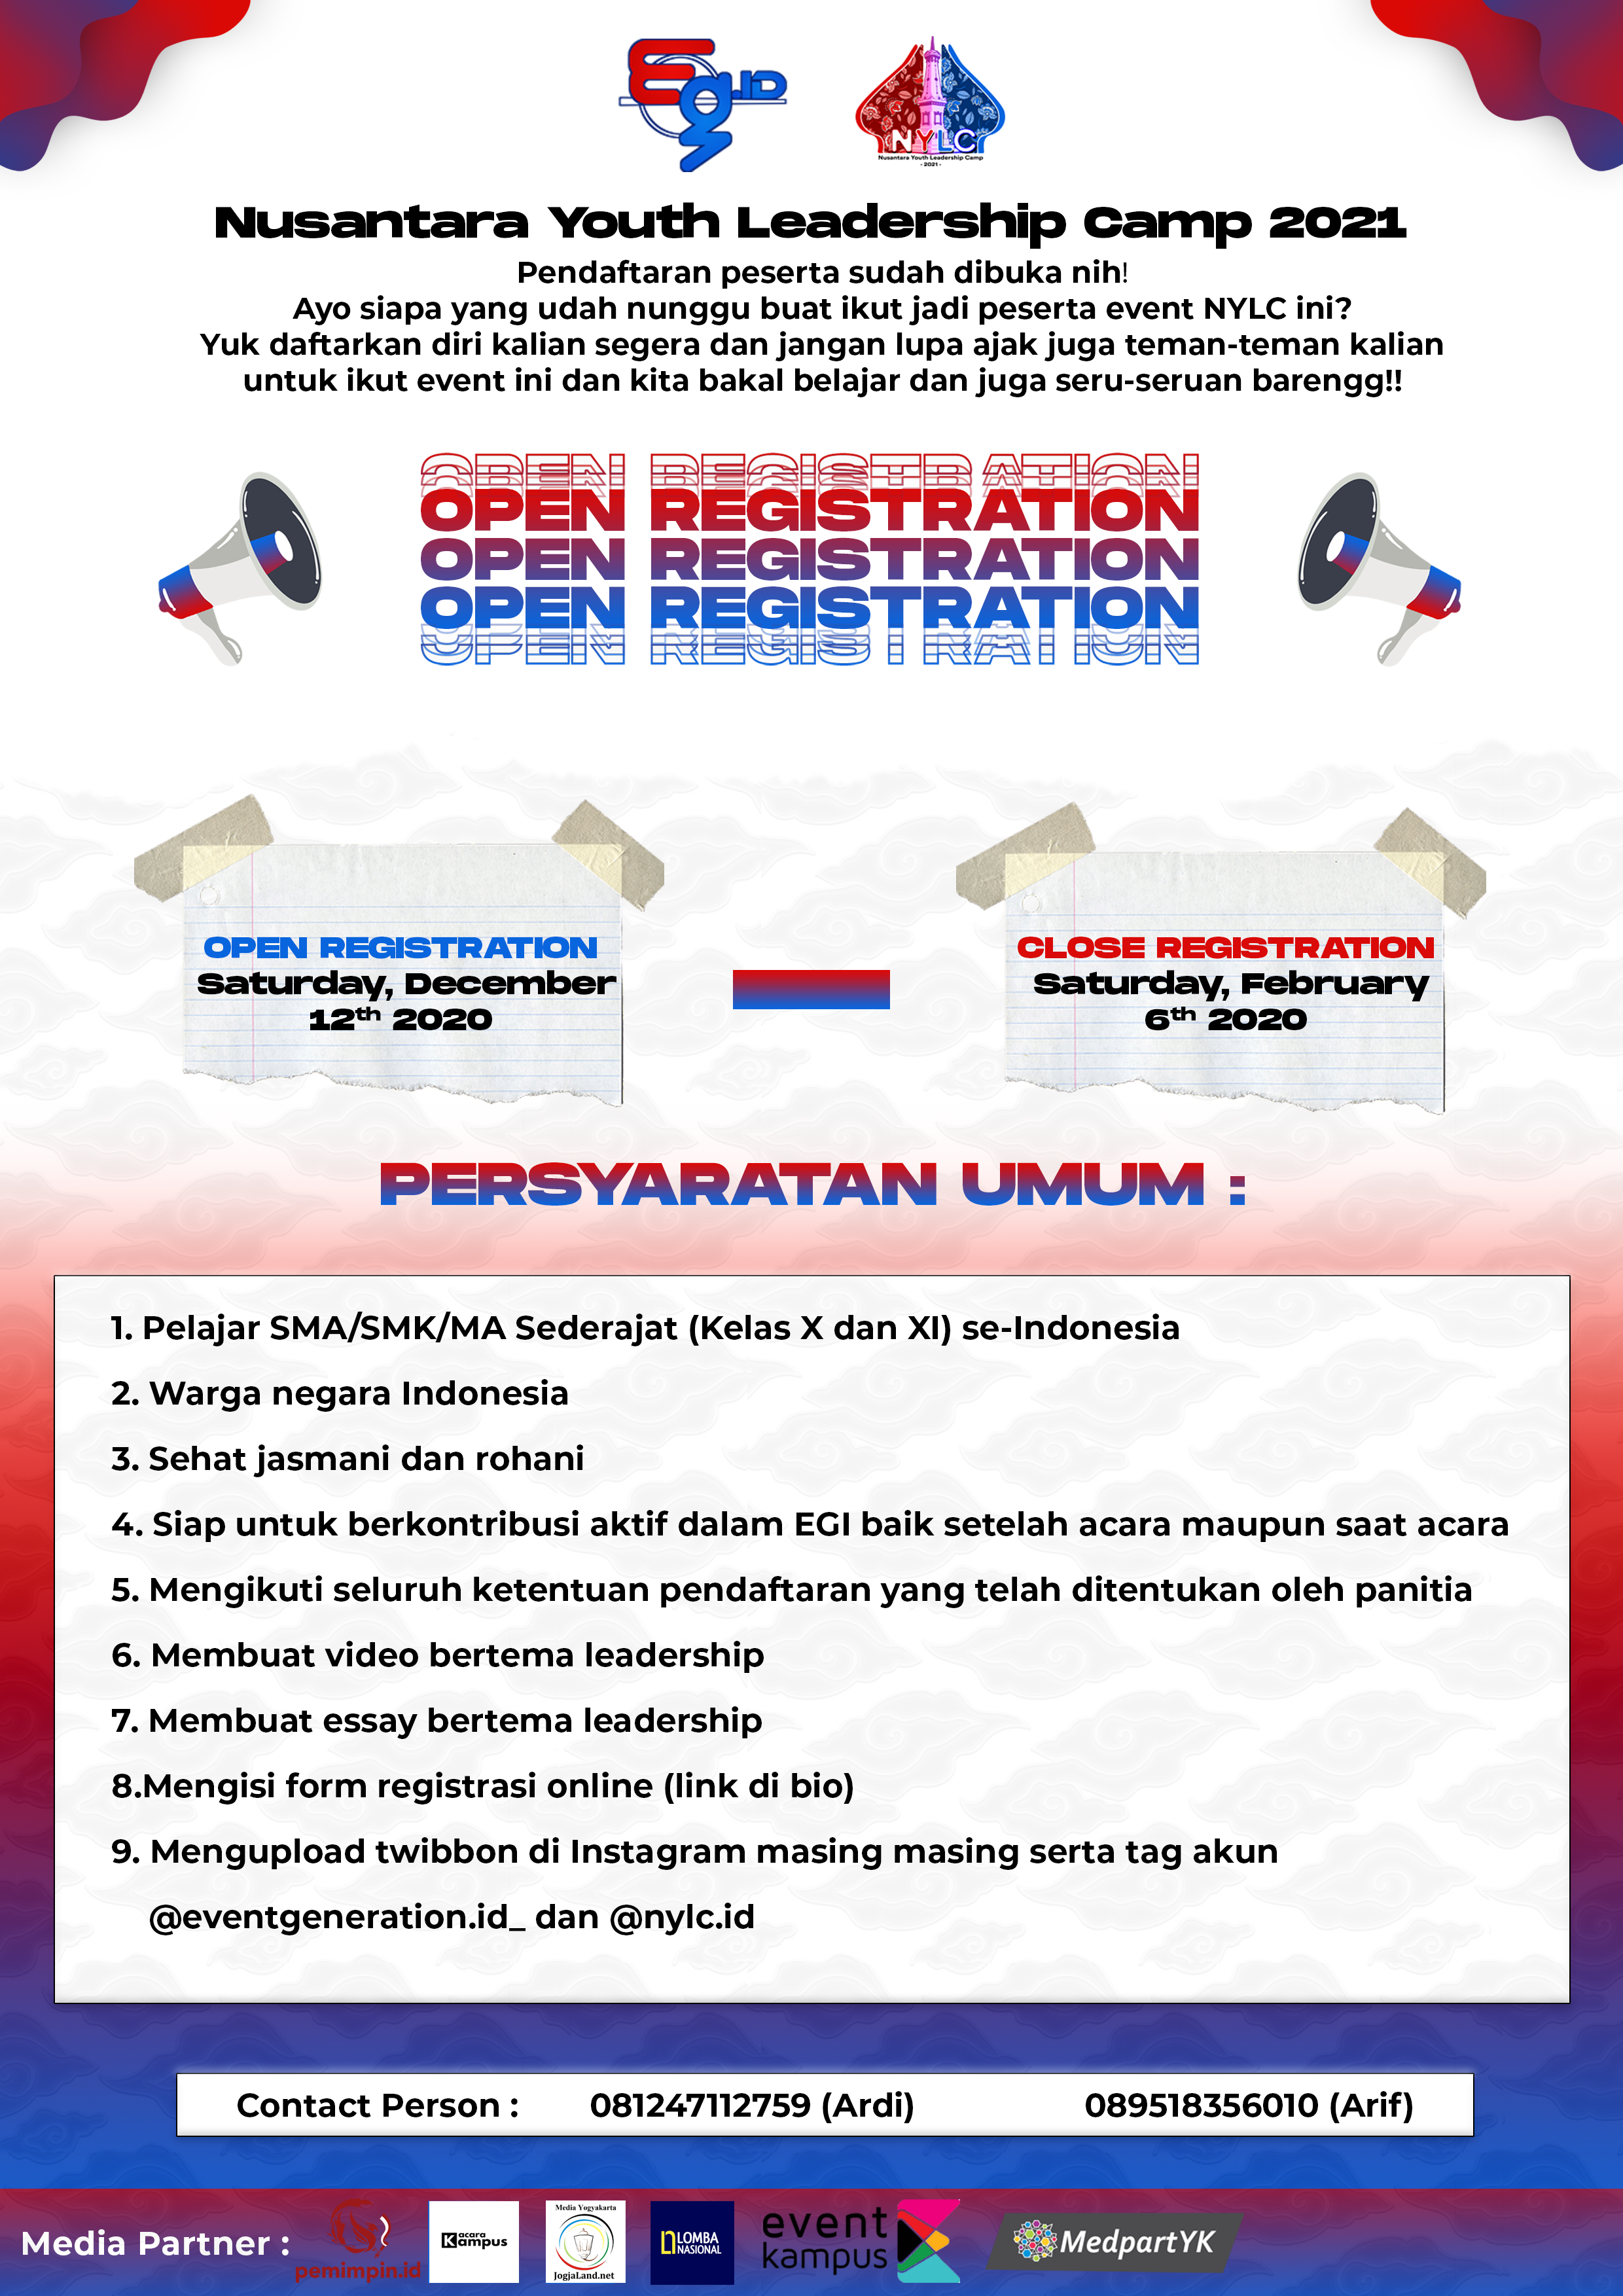 Permalink to Nusantara Youth Leadership Camp